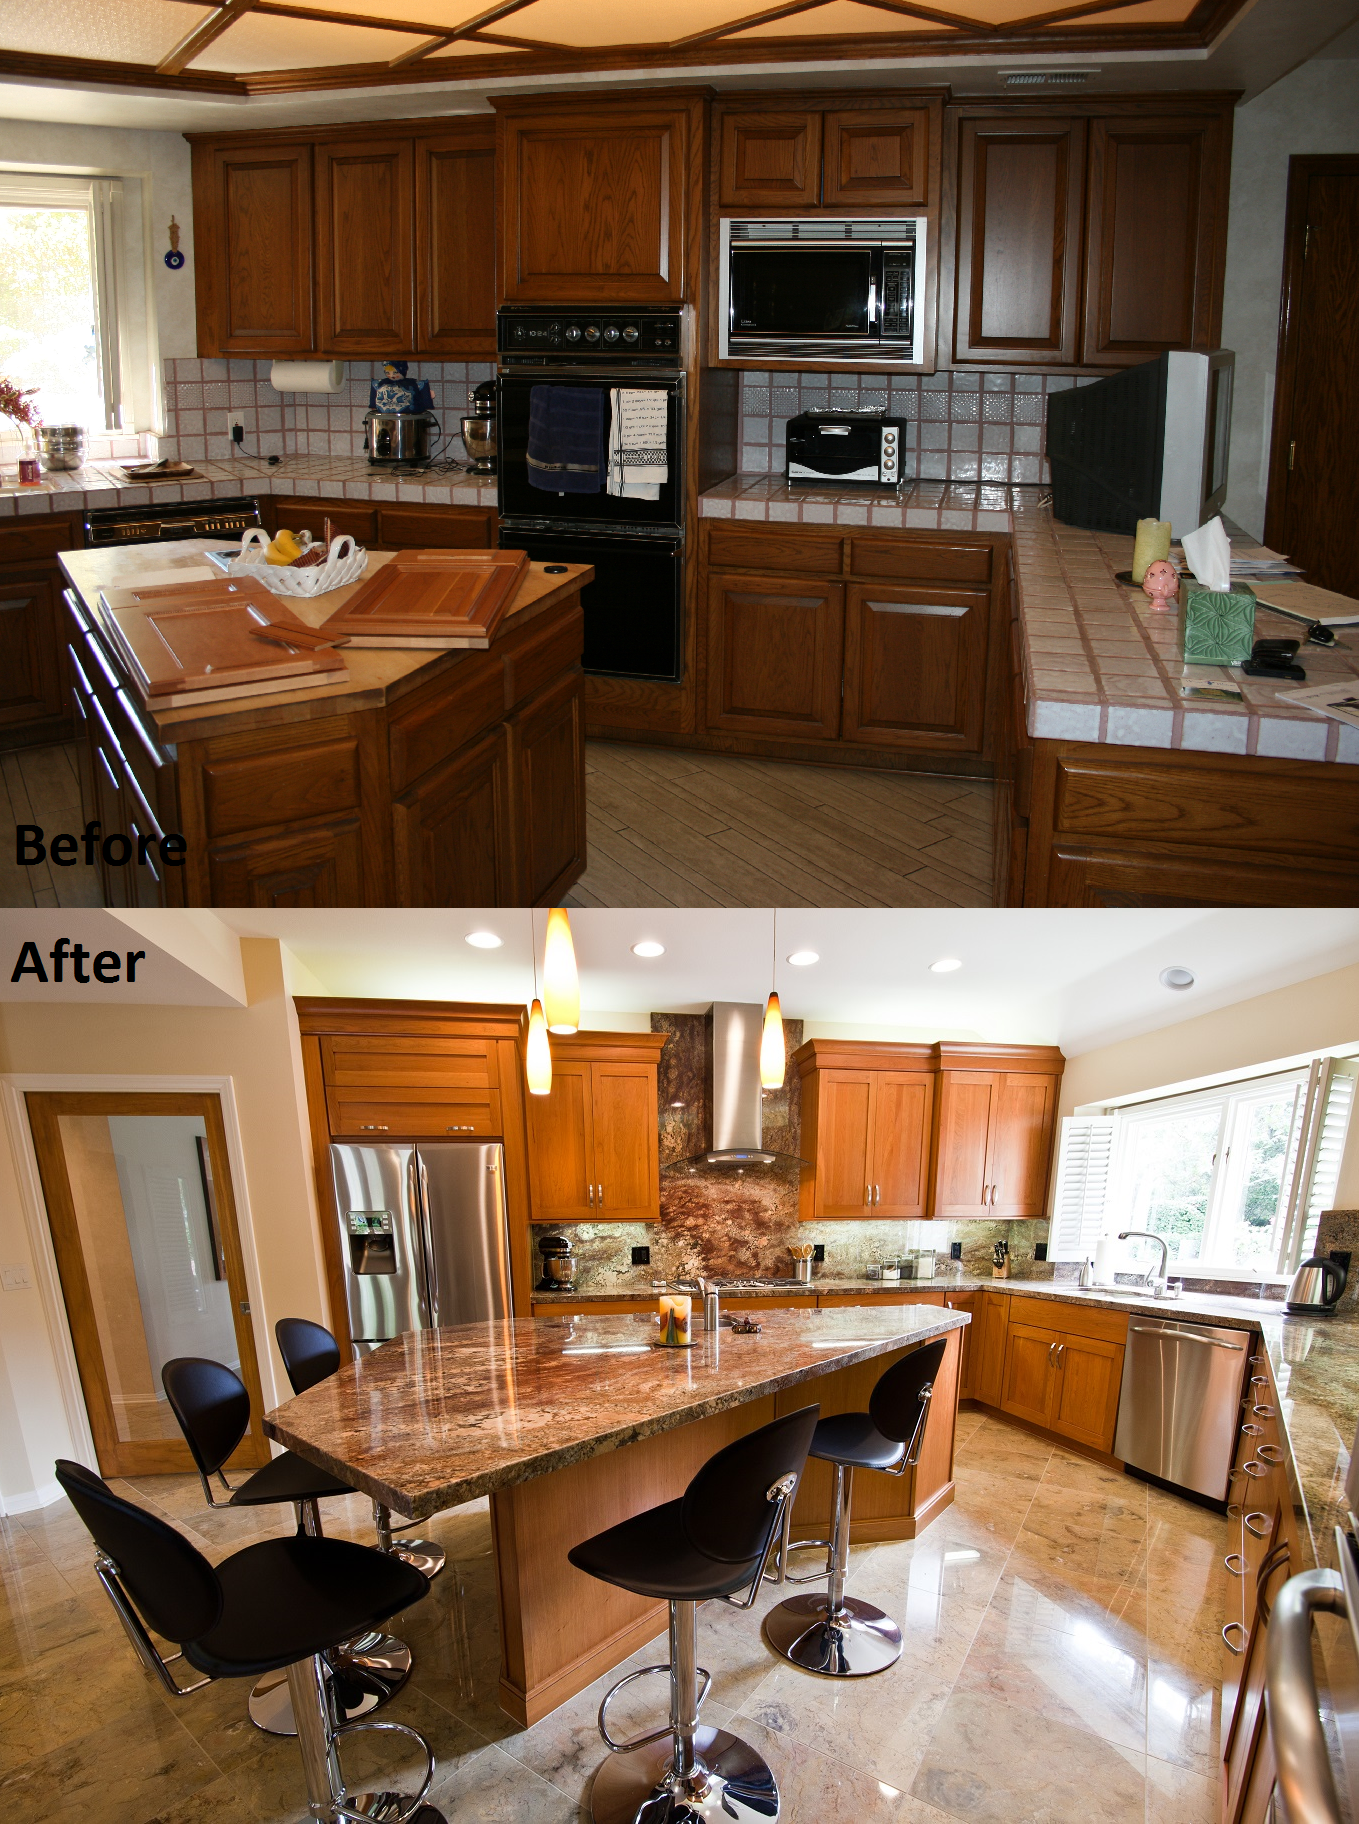 Before & After Kitchen remodel done by Kitchens Etc of Ventura